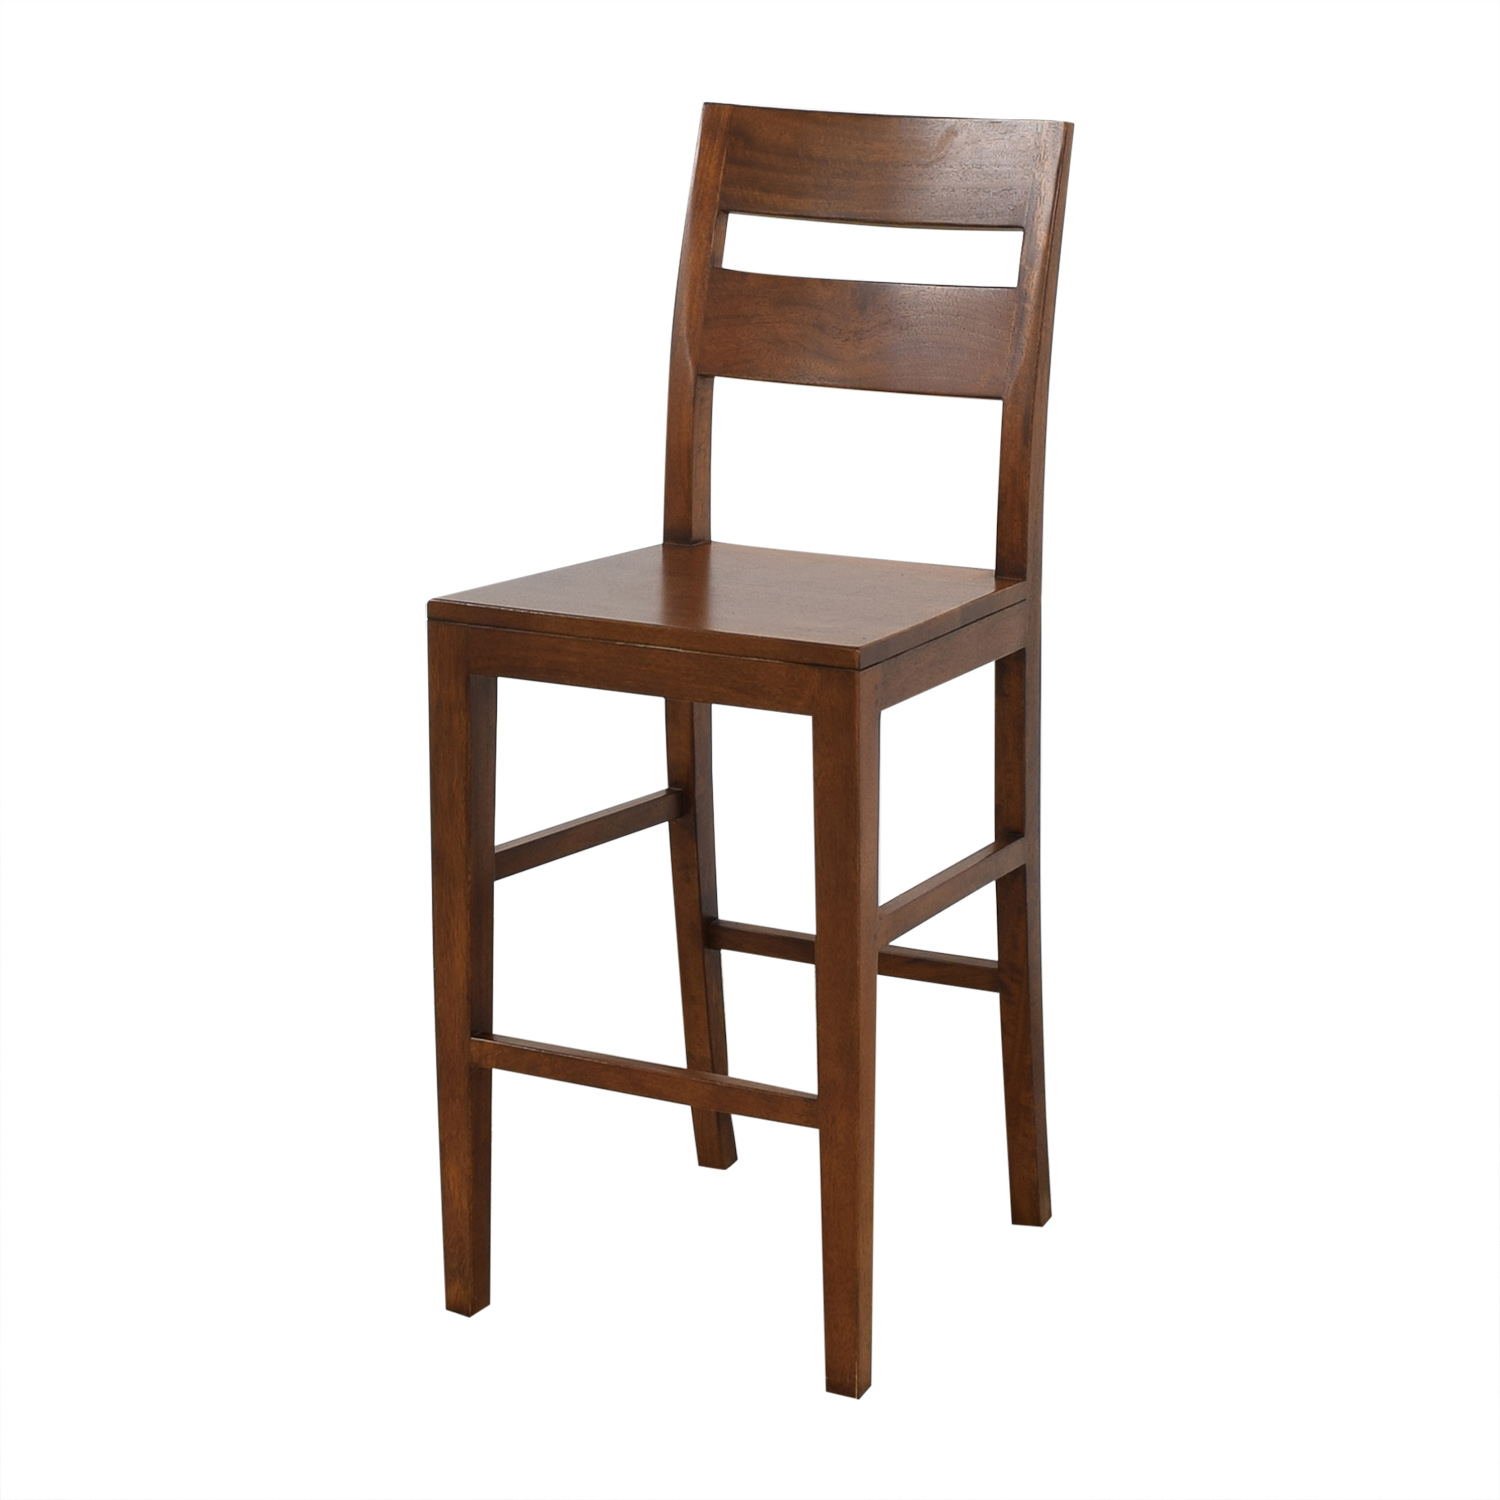 Crate & Barrel Crate and Barrel Counter Stools used